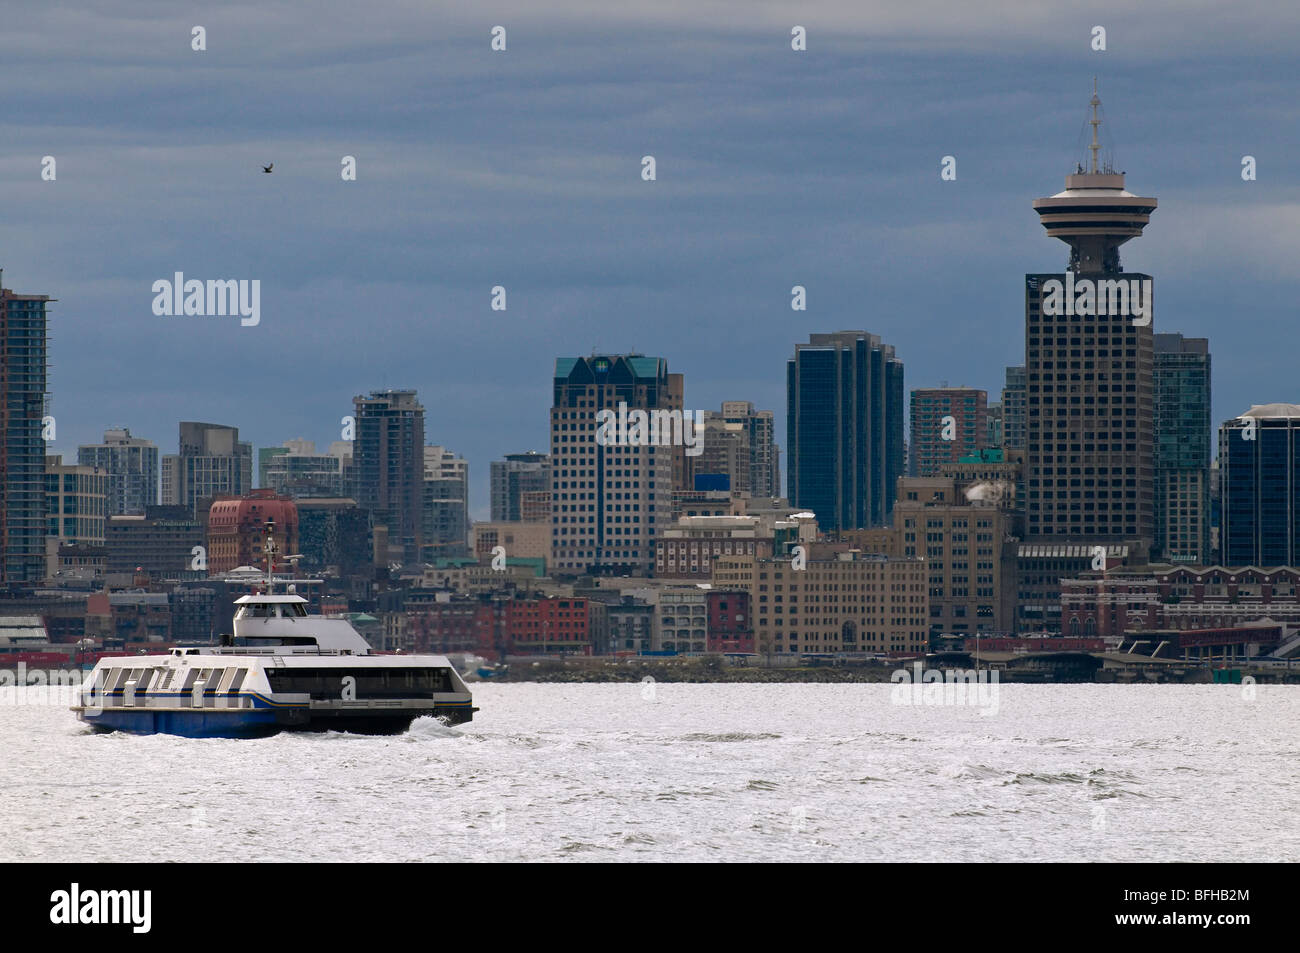 A Seabus crosses the Vancouver harbour towards downtown Vancouver. - Stock Image